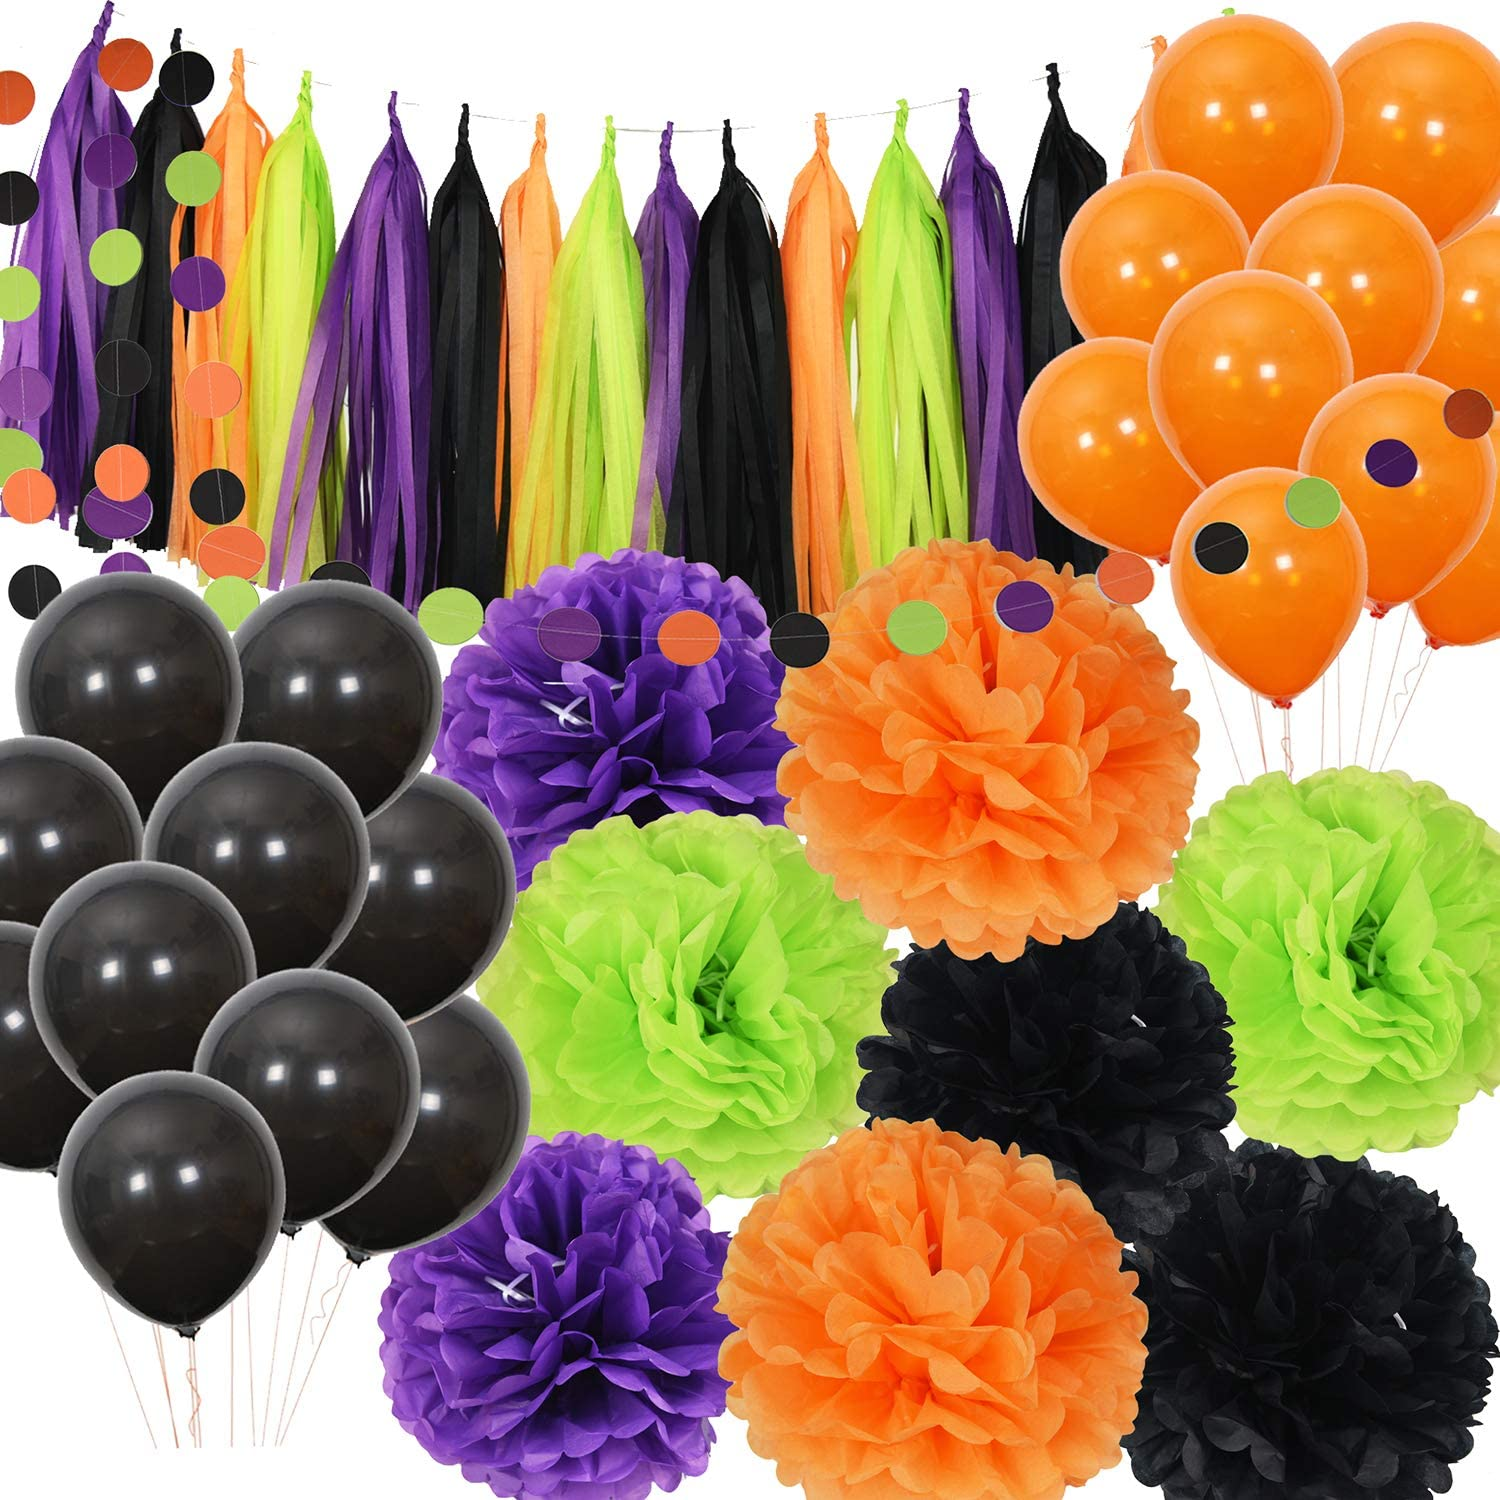 Halloween Ballons Party Decorations Orange Black Purple Green Color Tissue Pom Pom Paper Garland Halloween Party Supplies